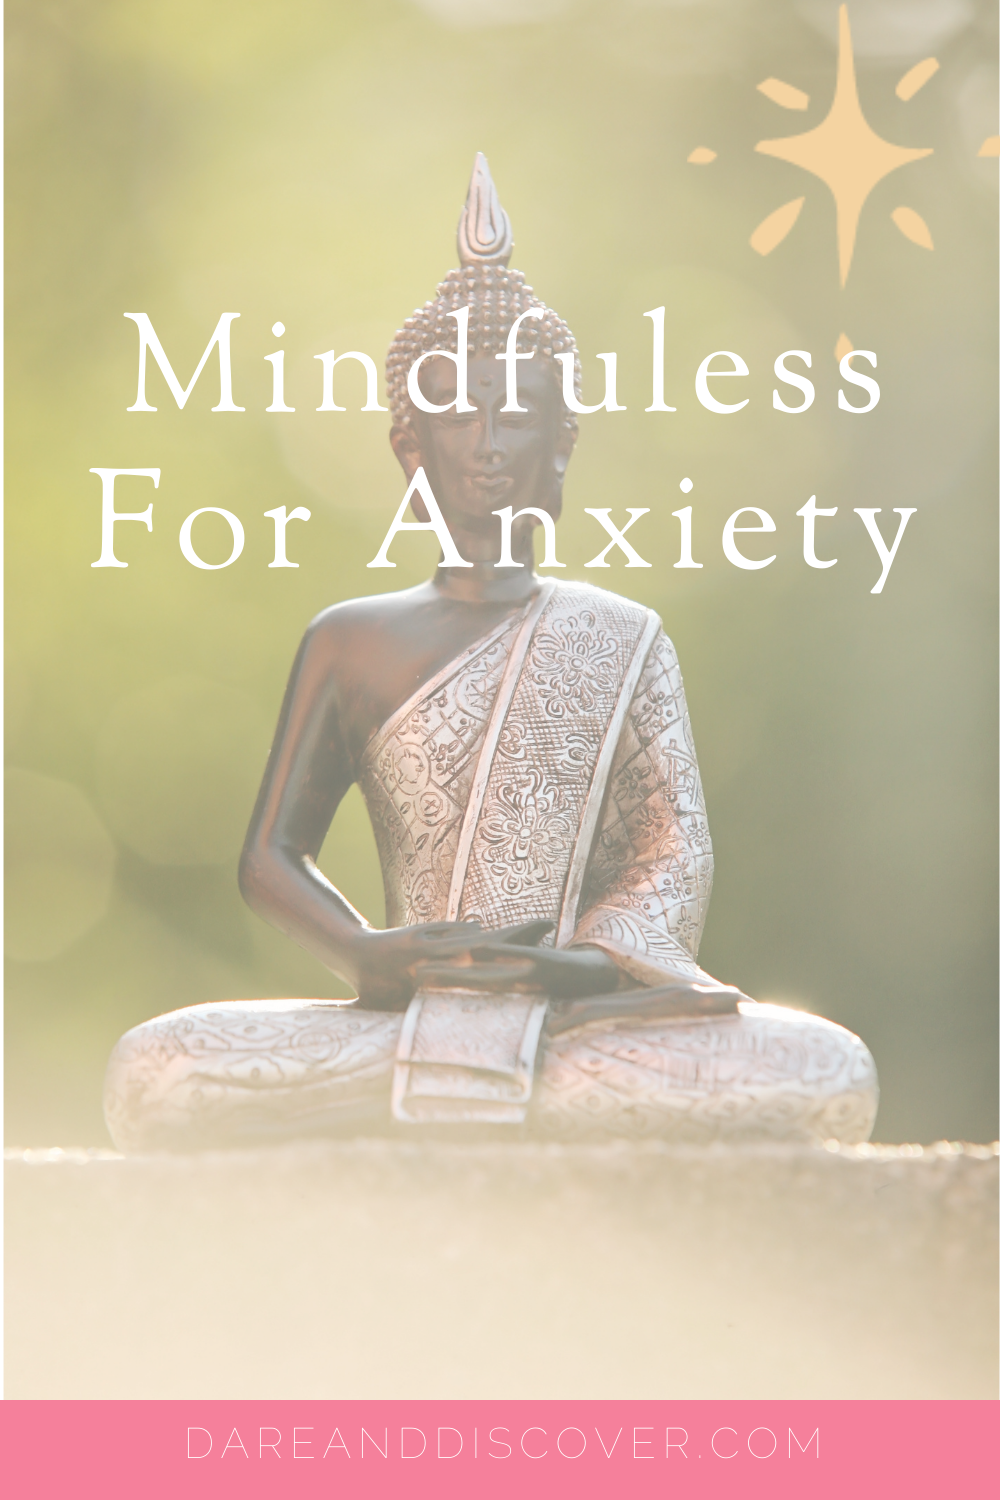 Everyone leads busy lives, the future can often feel uncertain which can lead to anxiety. Mindfulness helps us to stay more in the moment, rather than worrying about the past or future. Mindfulness for anxiety helps us to get more comfortable with anxiety, rather than fighting it. If we can be more mindful when it comes to anxiety, it won't dominate our lives any more. | Mindfulness For Anxiety | Mindfulness Practice | Help For Anxiety | #Mindfulness #Anxiety #MentalHealth